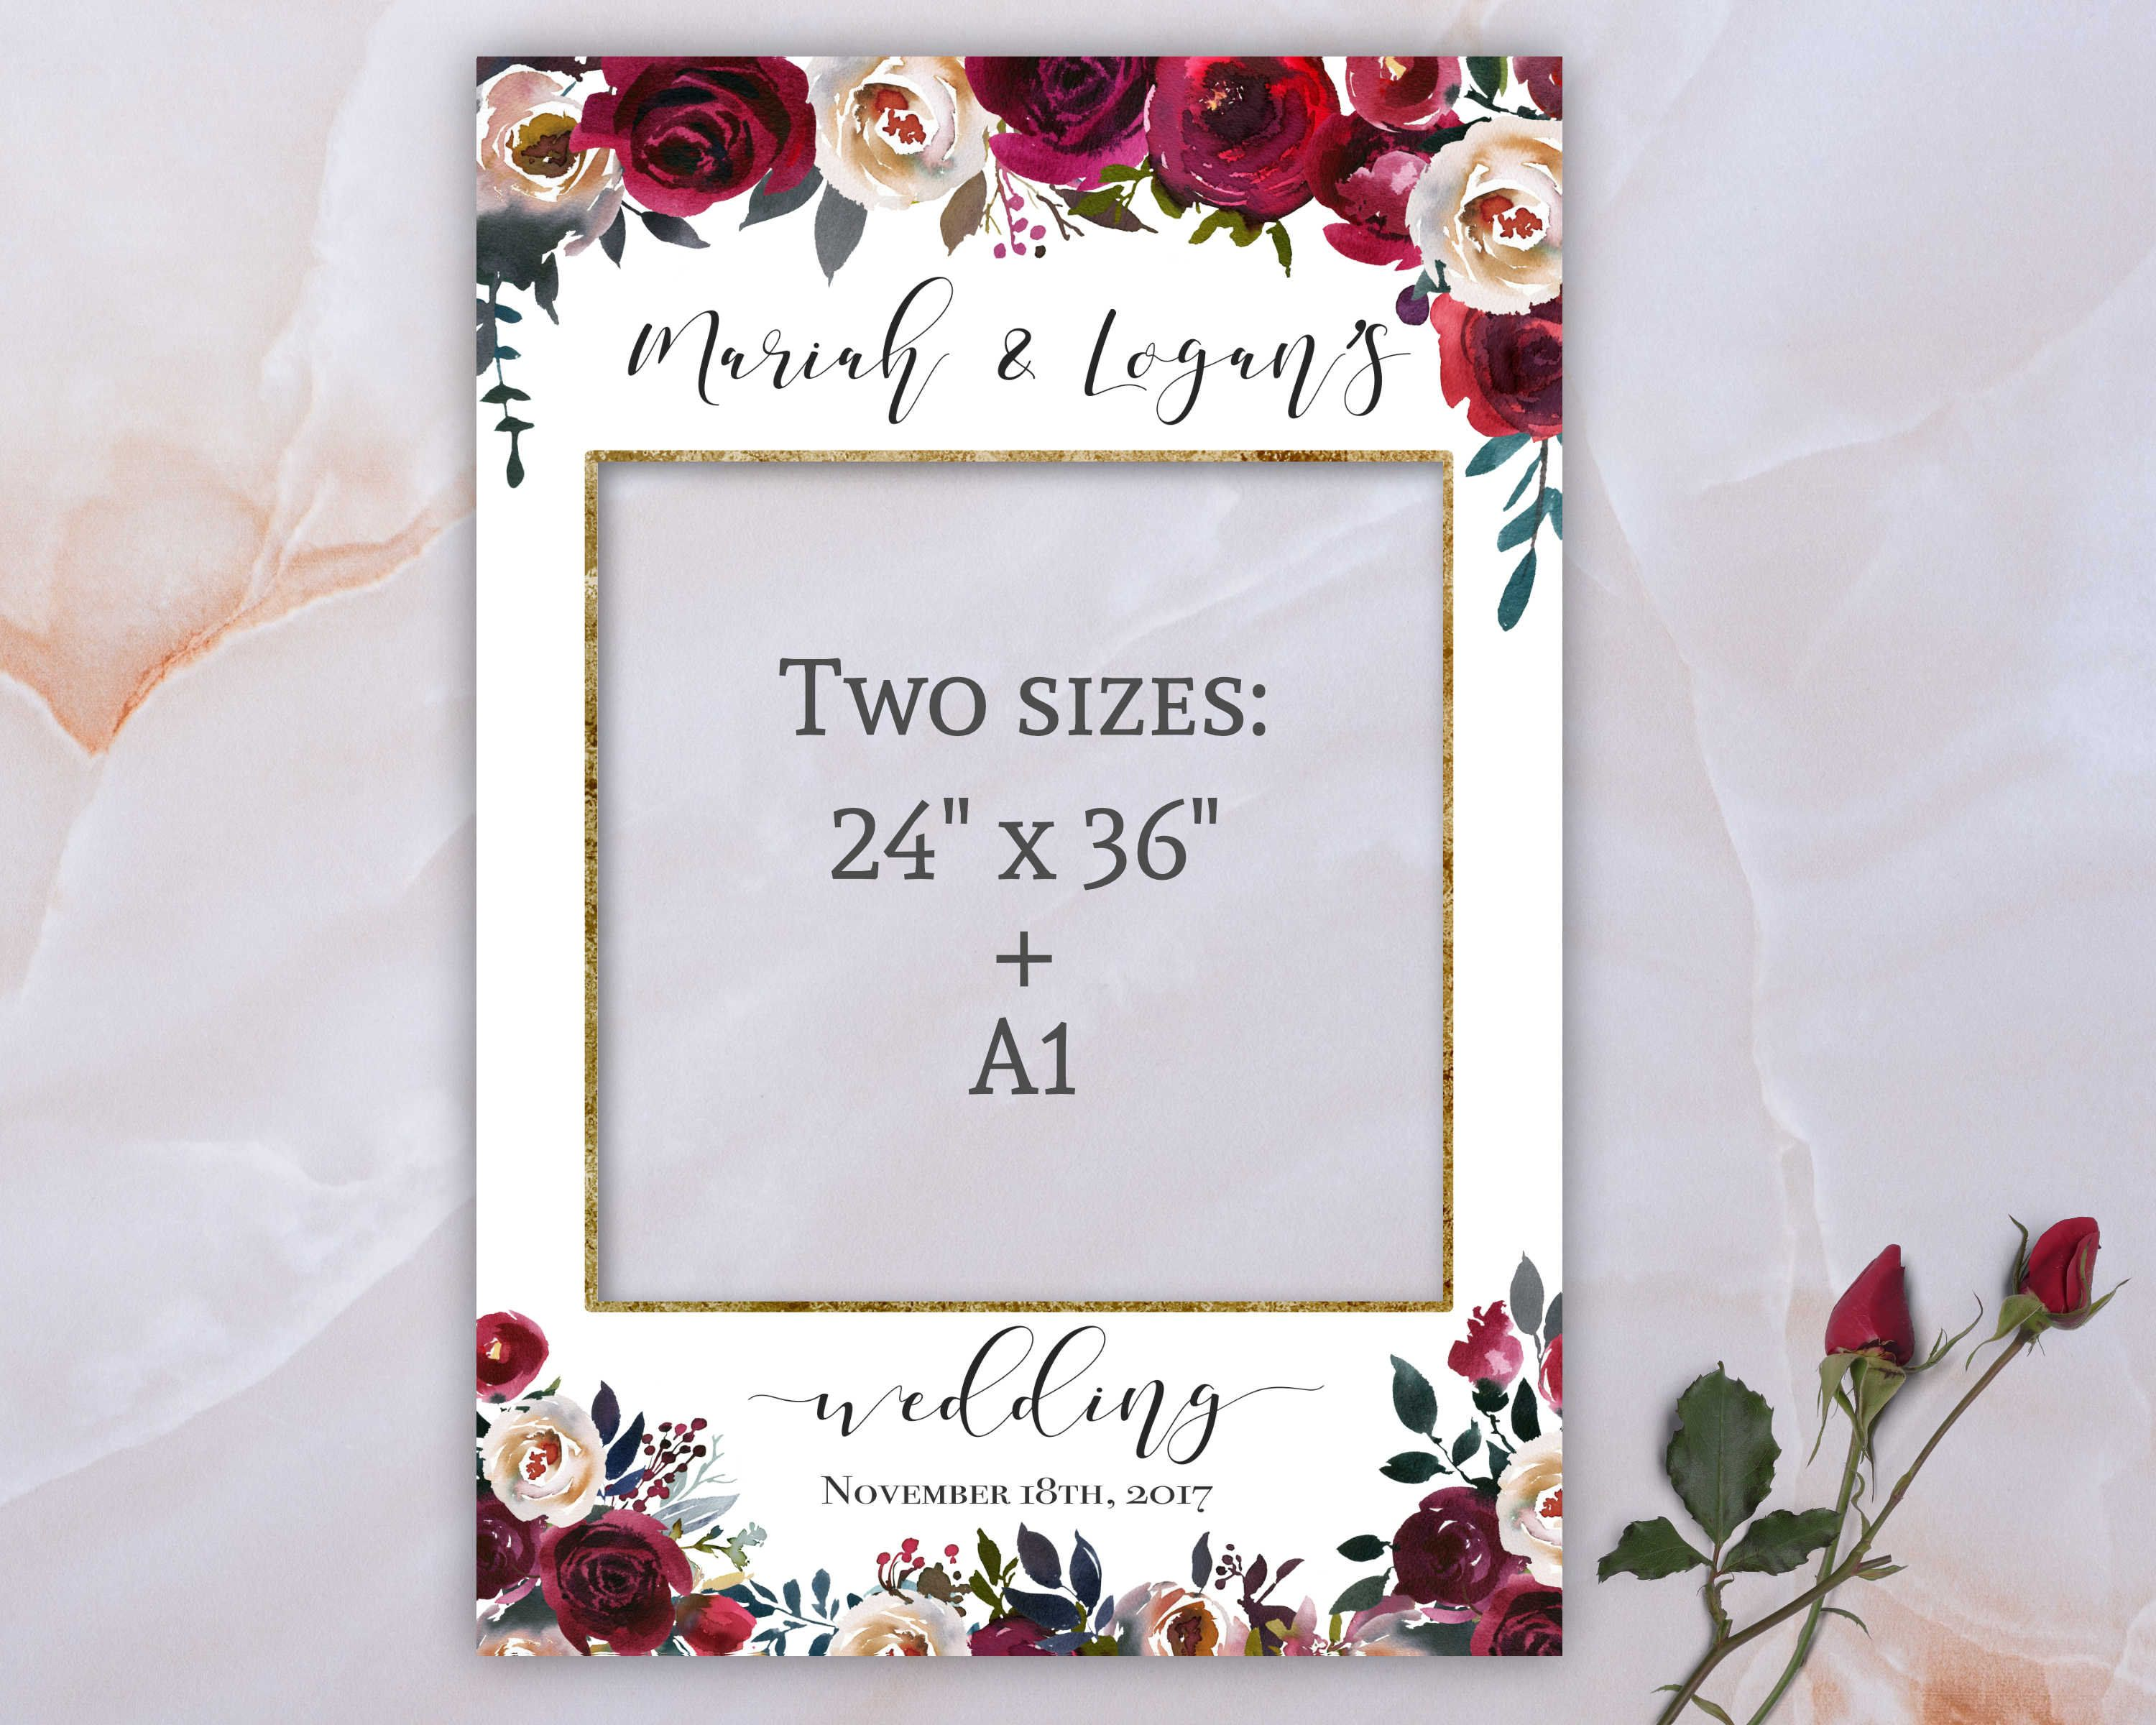 wedding photo booth frame editable photo frame printable burgundy pearl watercolor floral photo prop frame template mp04 photo frame prop wedding frames framed wedding photos photo frame prop wedding frames